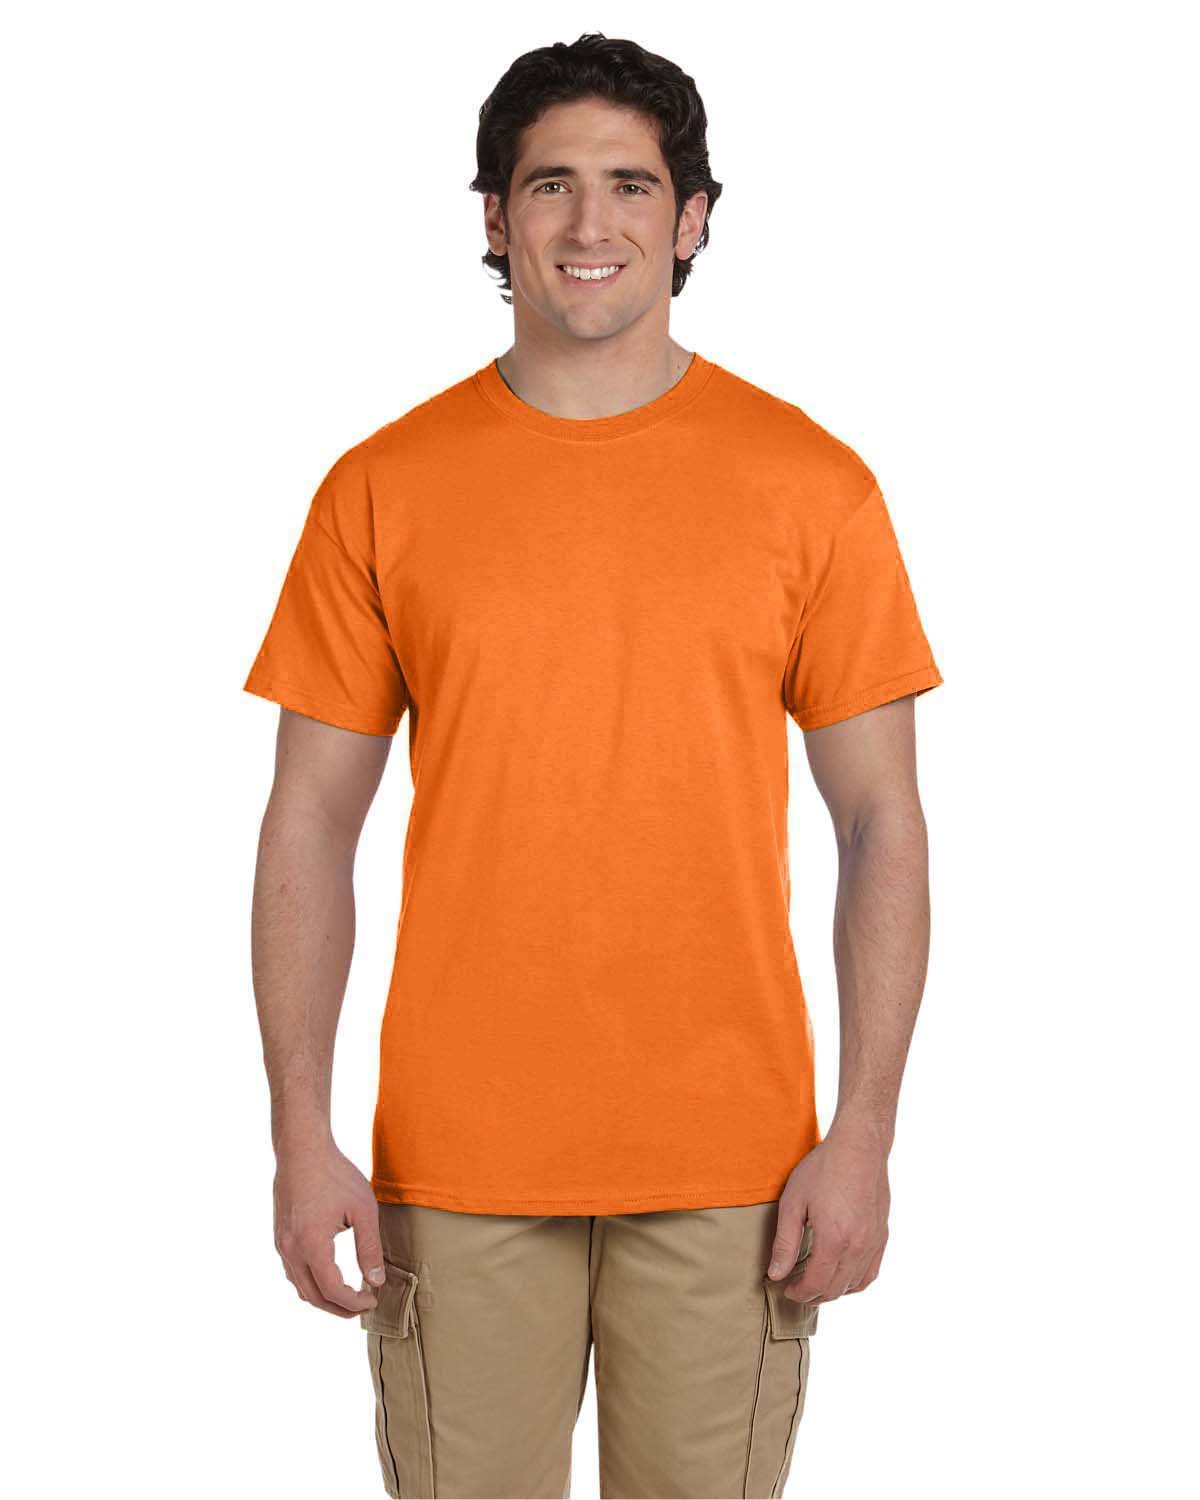 Fruit of the Loom Adult HD Cotton™ T-Shirt SAFETY ORANGE